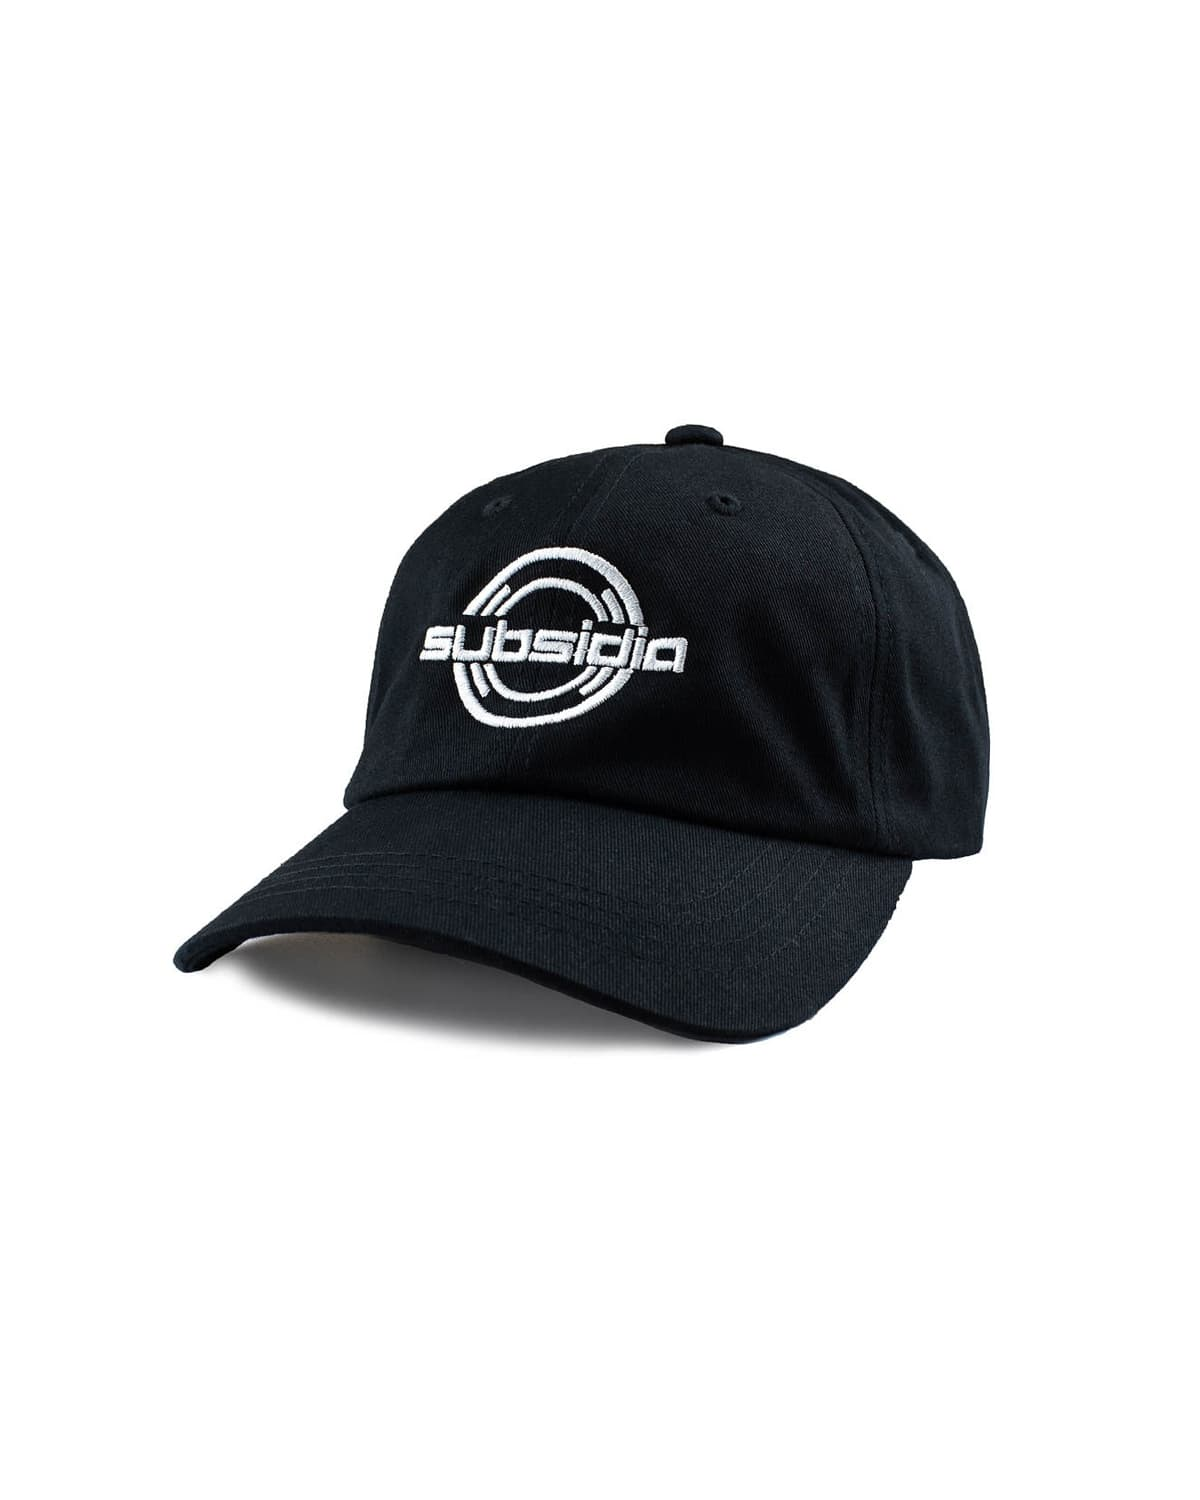 'Subsidia' Dad Hat - Black/White